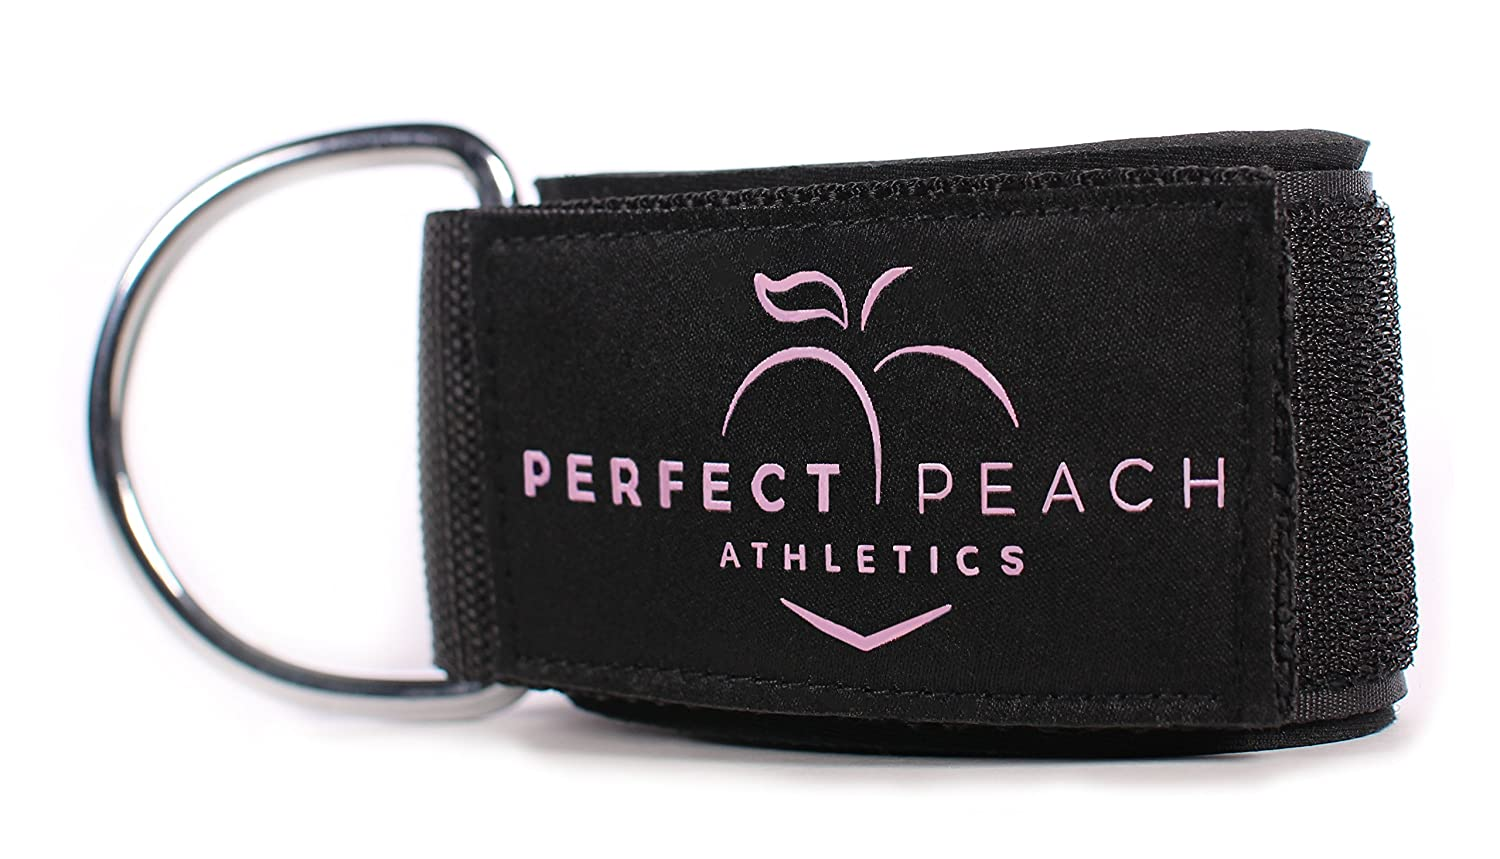 Perfect Peach Athletics Ankle Straps for Cable Machines